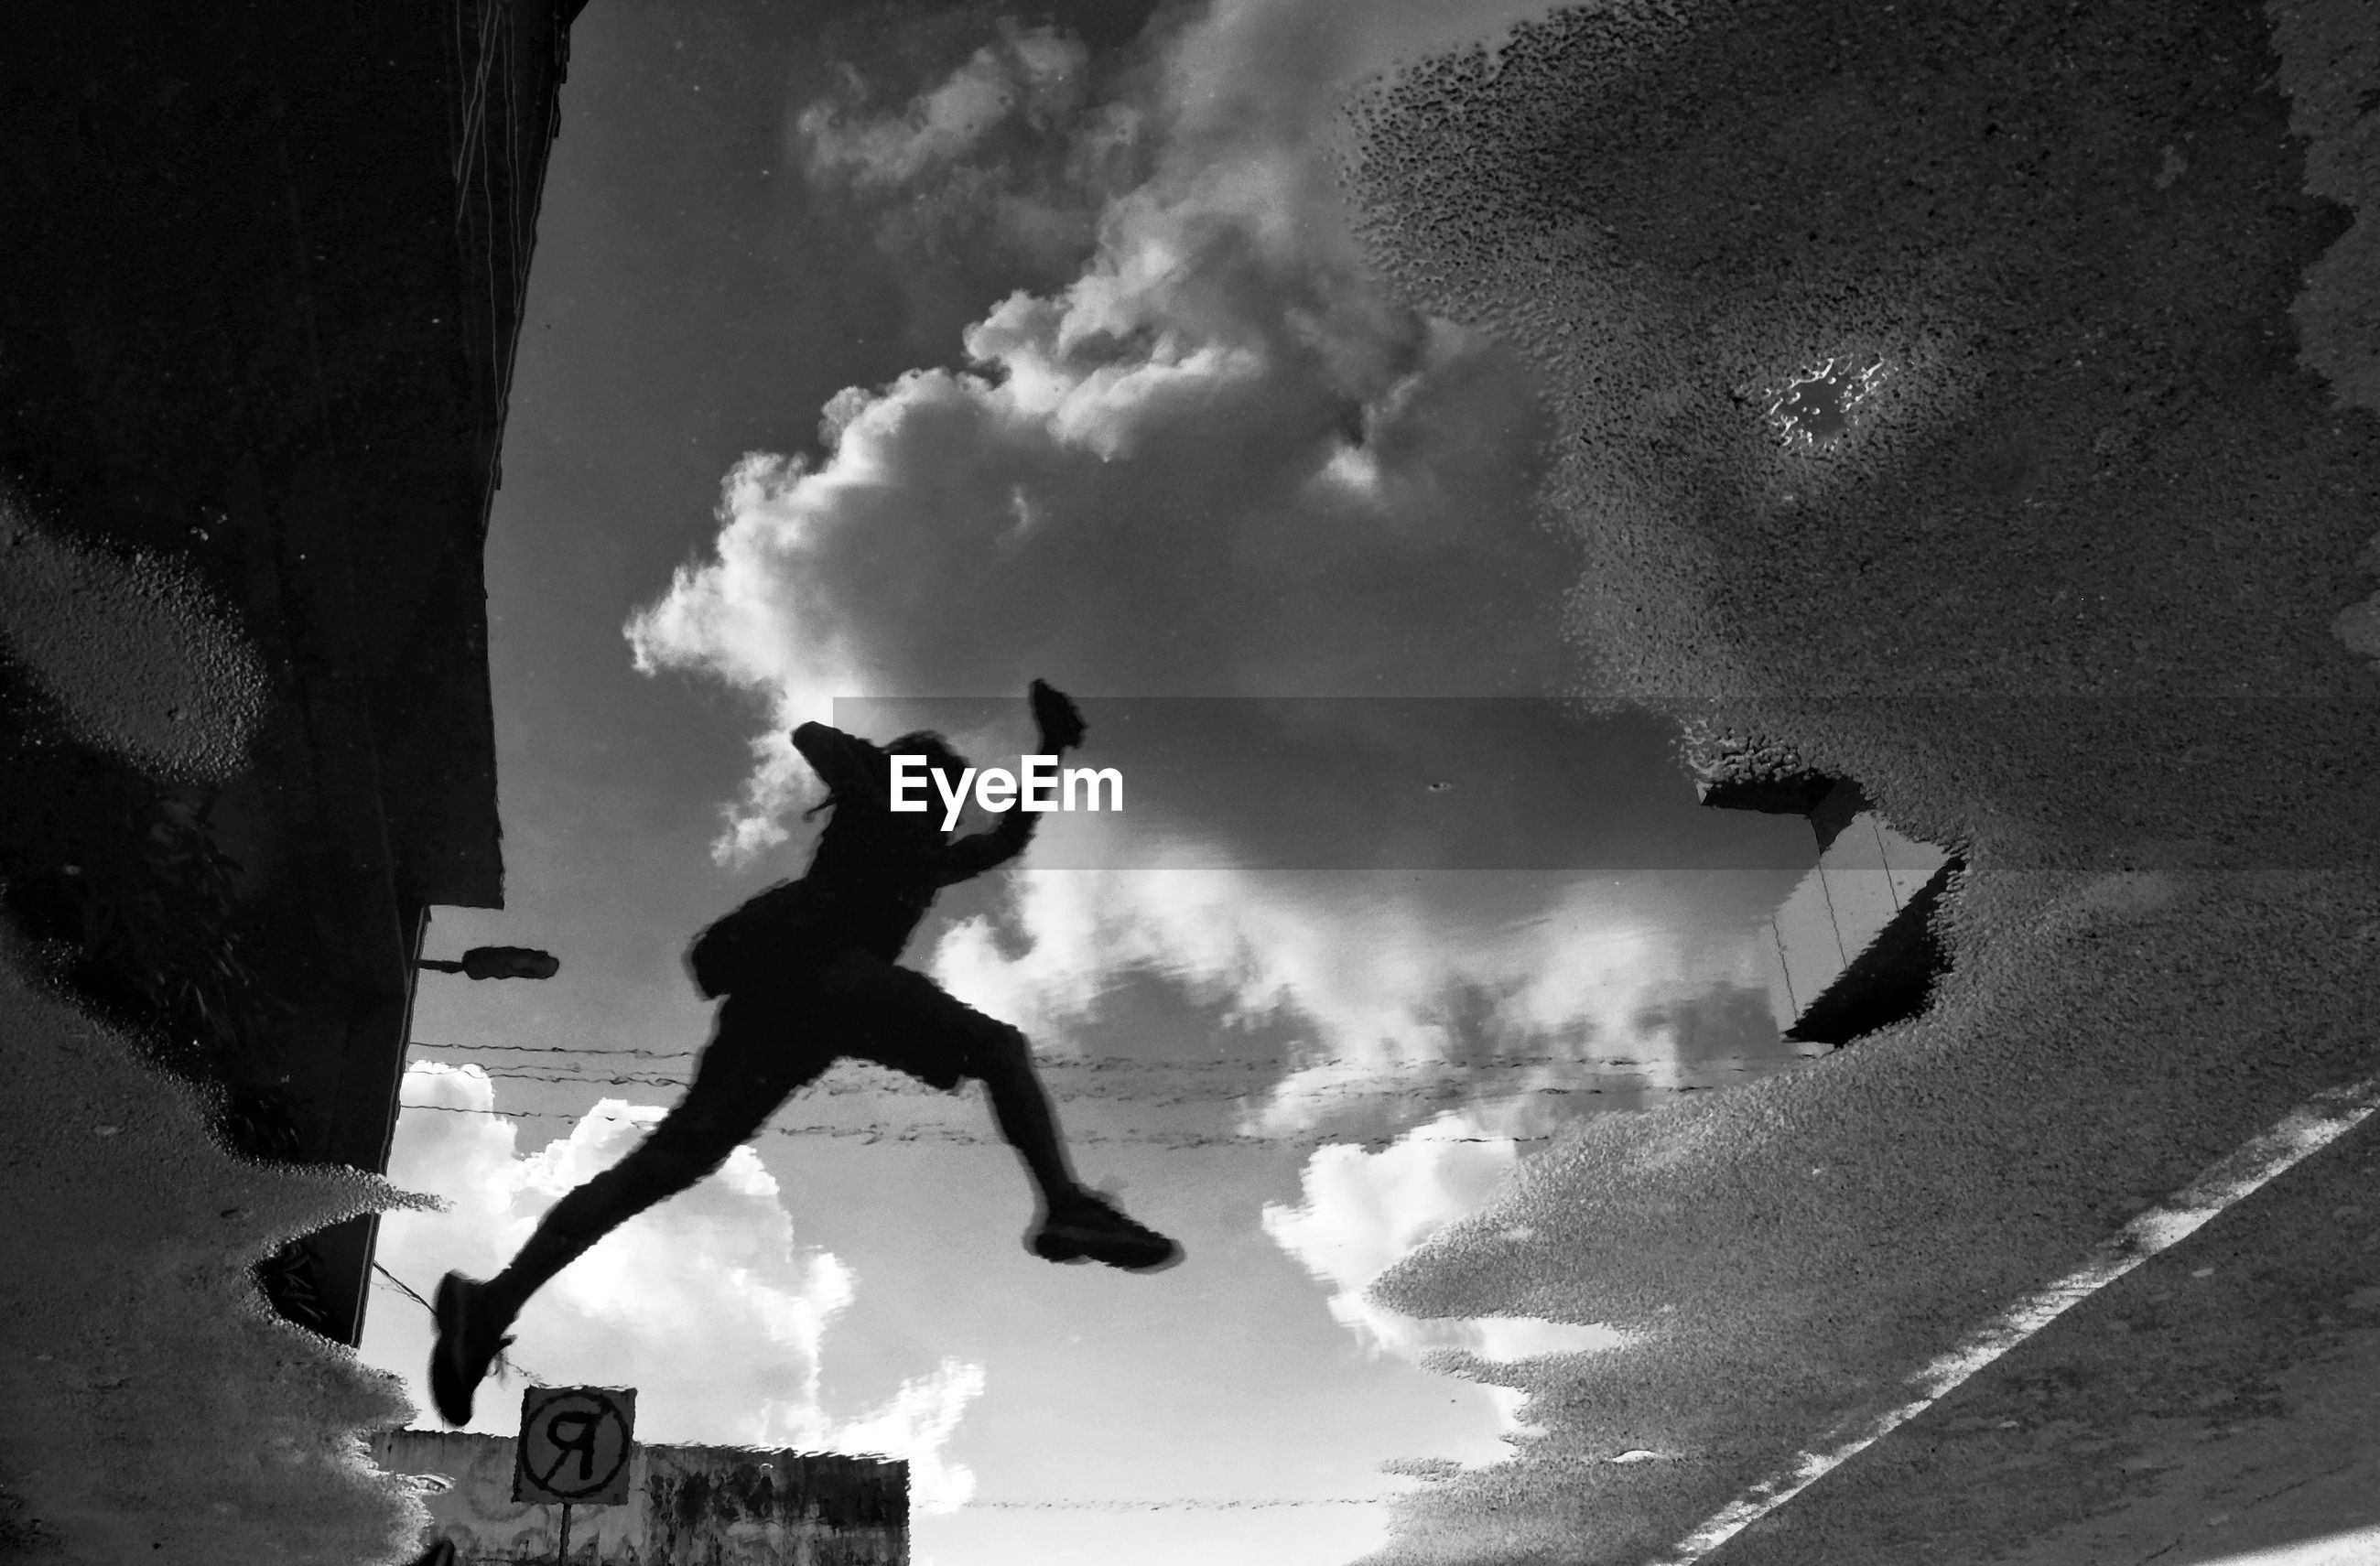 Low angle view of silhouette person jumping in city against sky